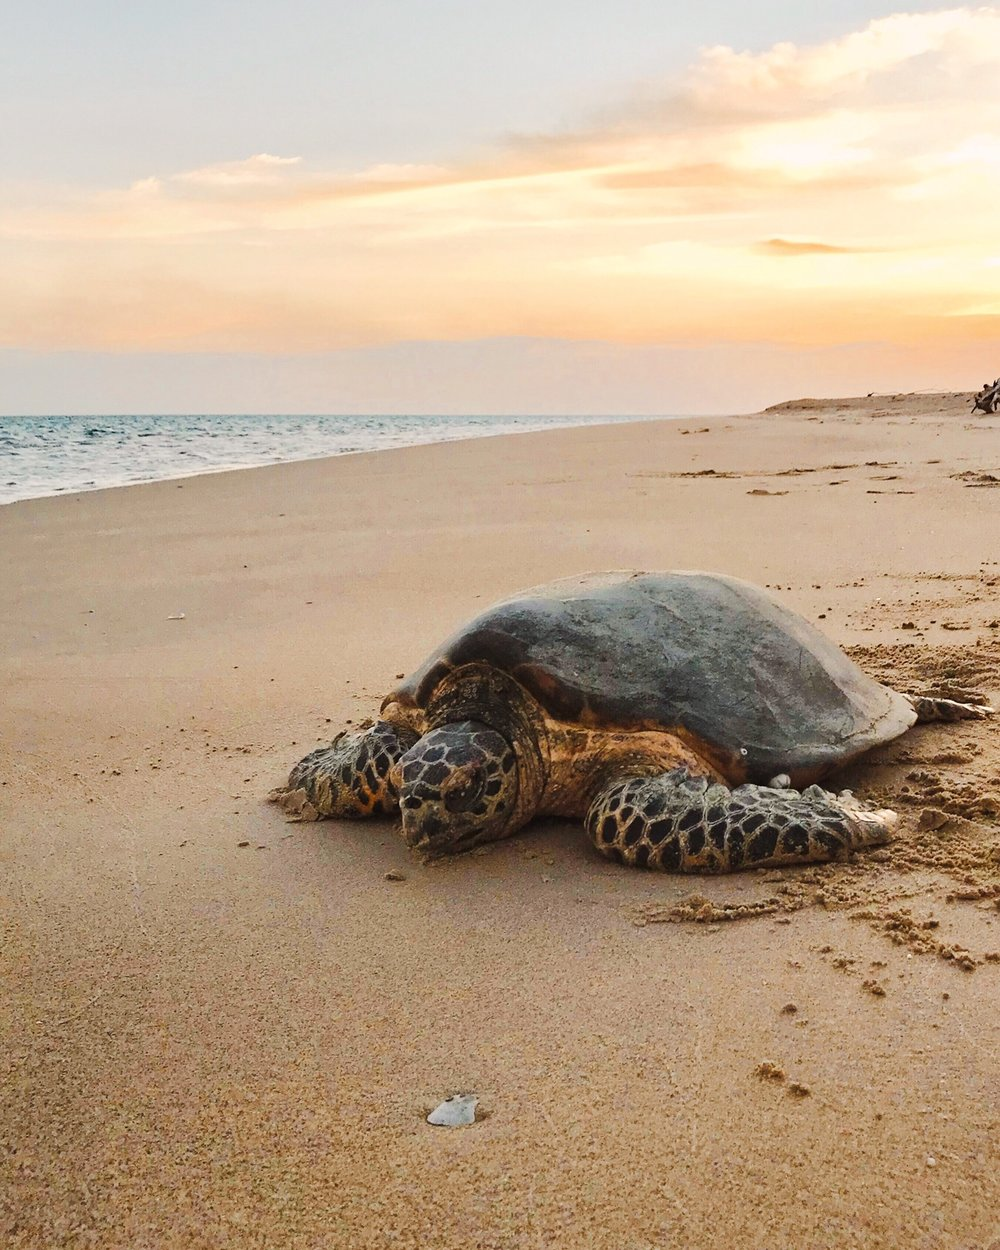 A Green Sea Turtle makes her way back to the sea after laying her eggs